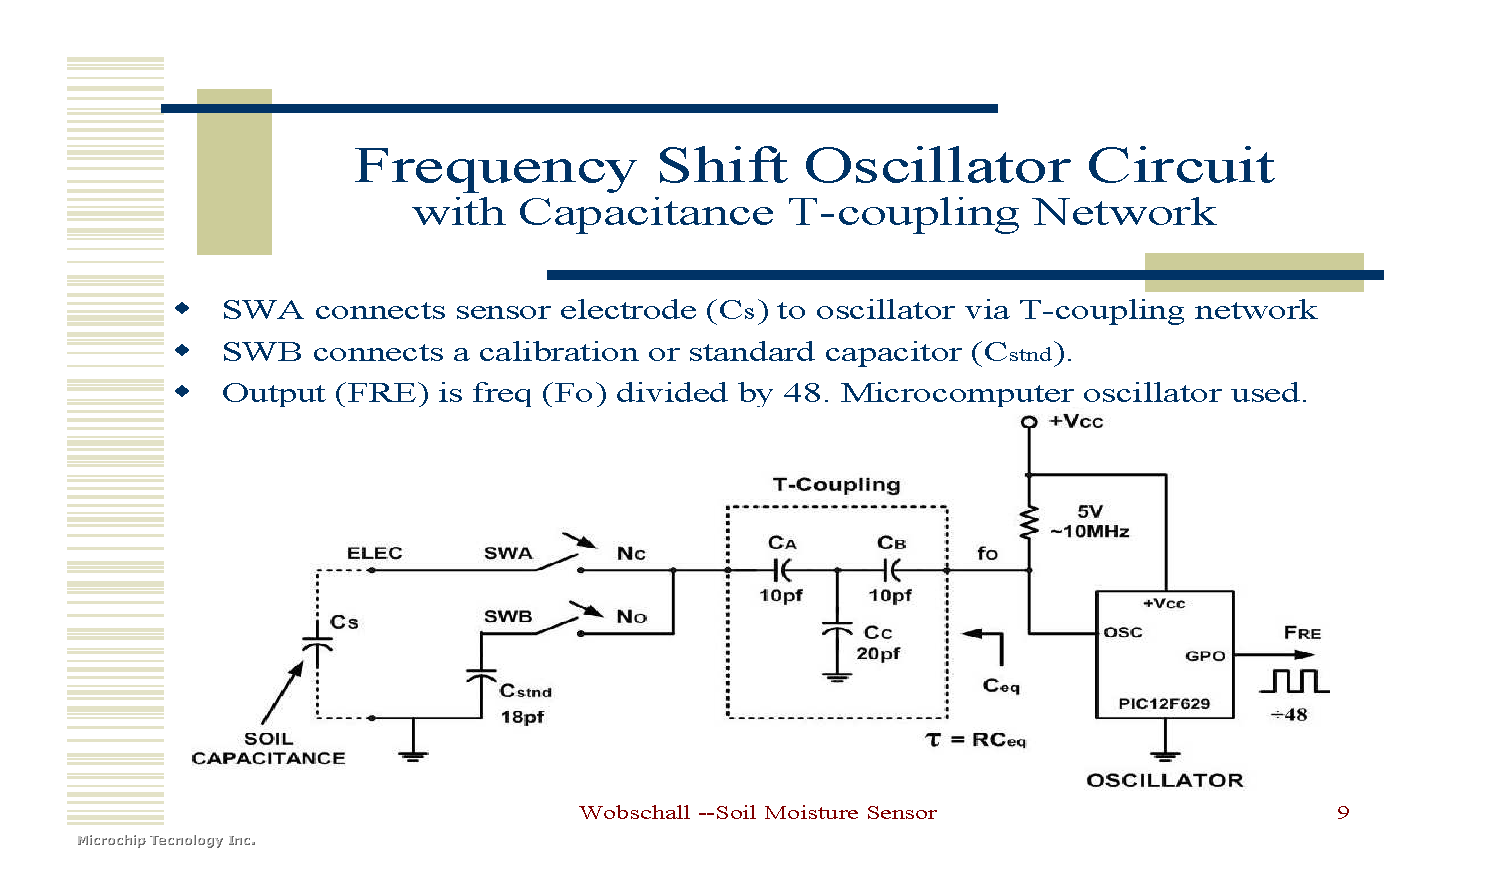 Pic12f629 Frequency Shift Oscillator Circuit Clarification Code Basic Pg 9 From Moontroller 14580 Kb Downloaded 648 Times